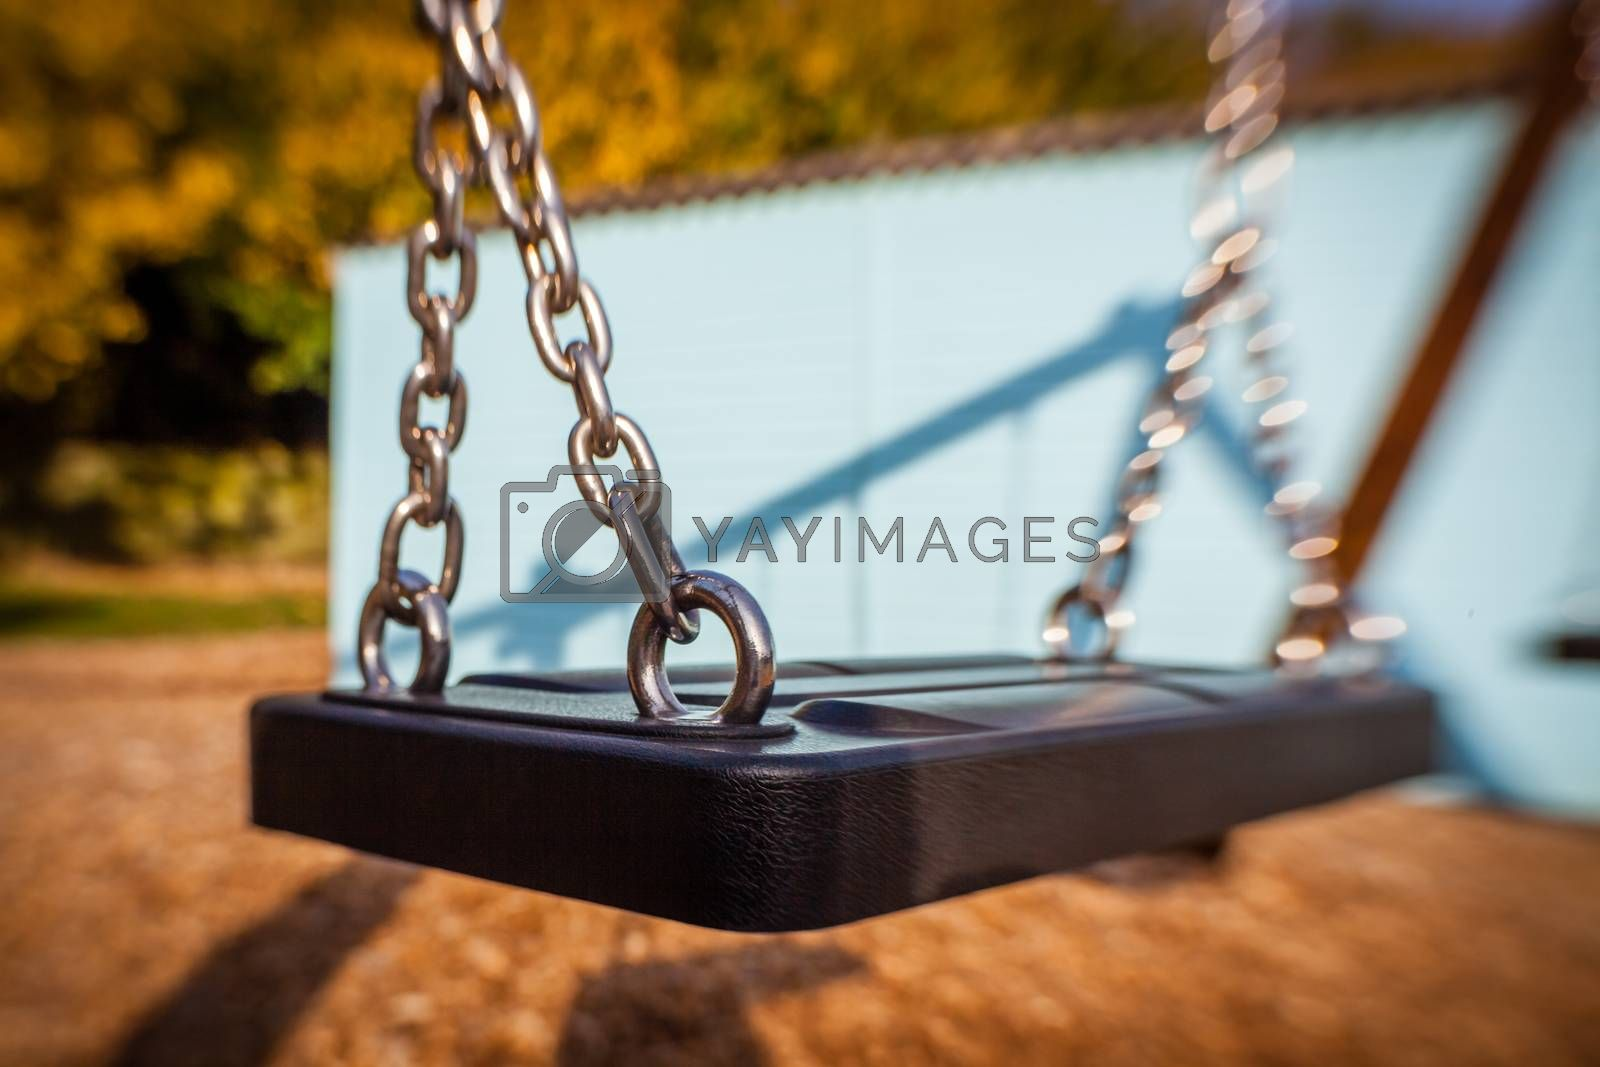 Picture of an swing in an outdoor playground